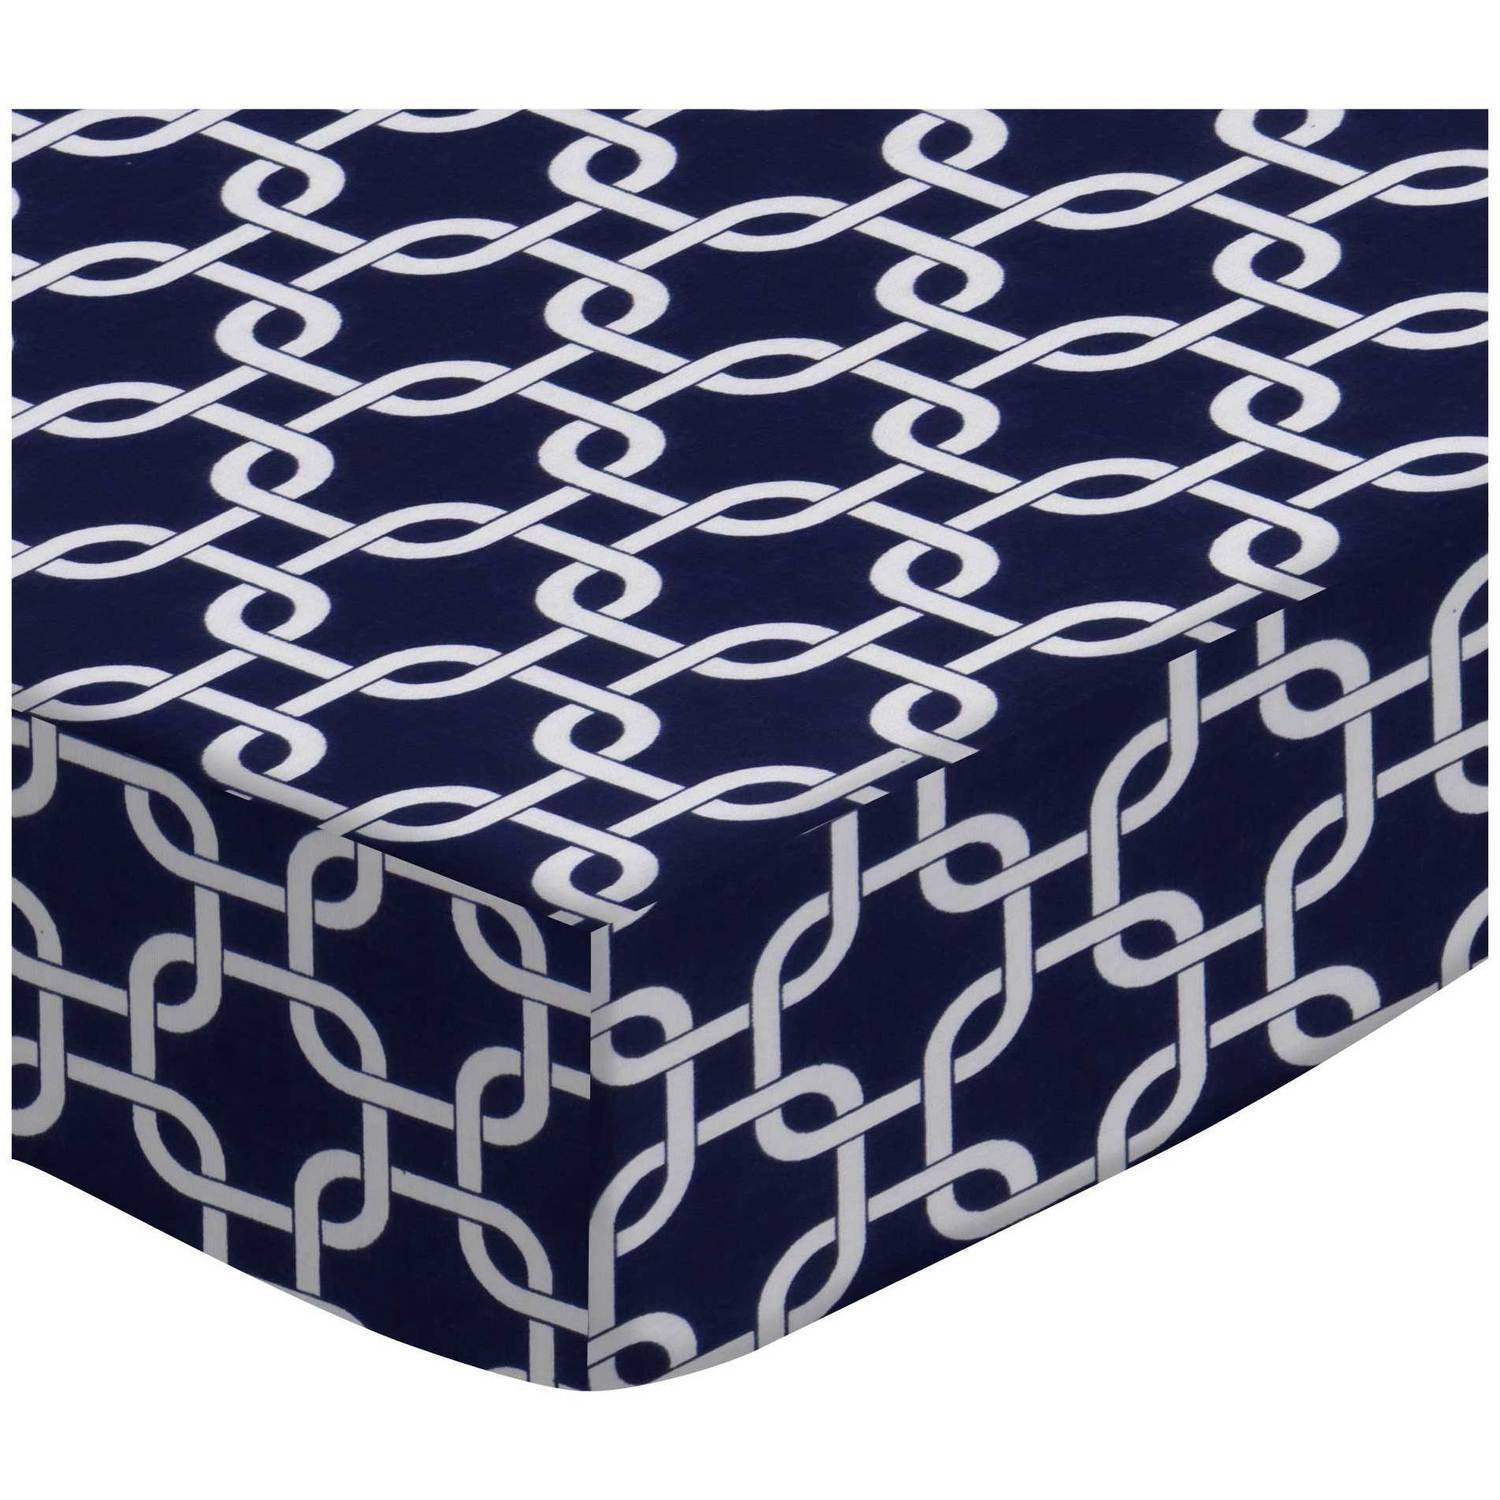 SheetWorld Fitted Fitted Oval Crib Sheet (Stokke Sleepi) - Navy Links